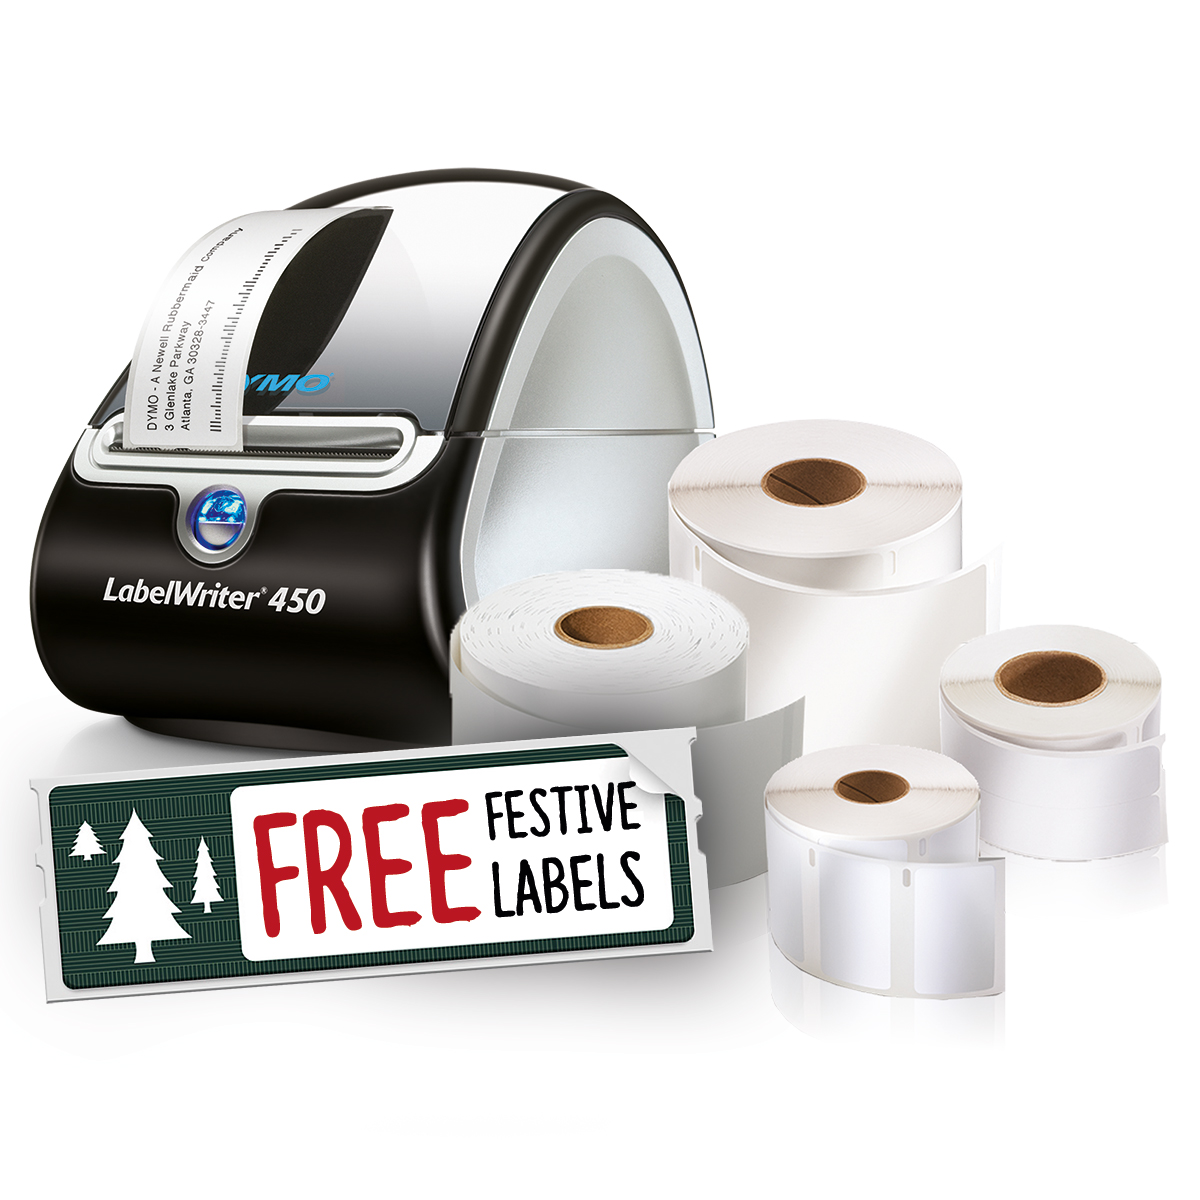 Dymo Labelwriter 450 Bundle with Free Tree Design Label